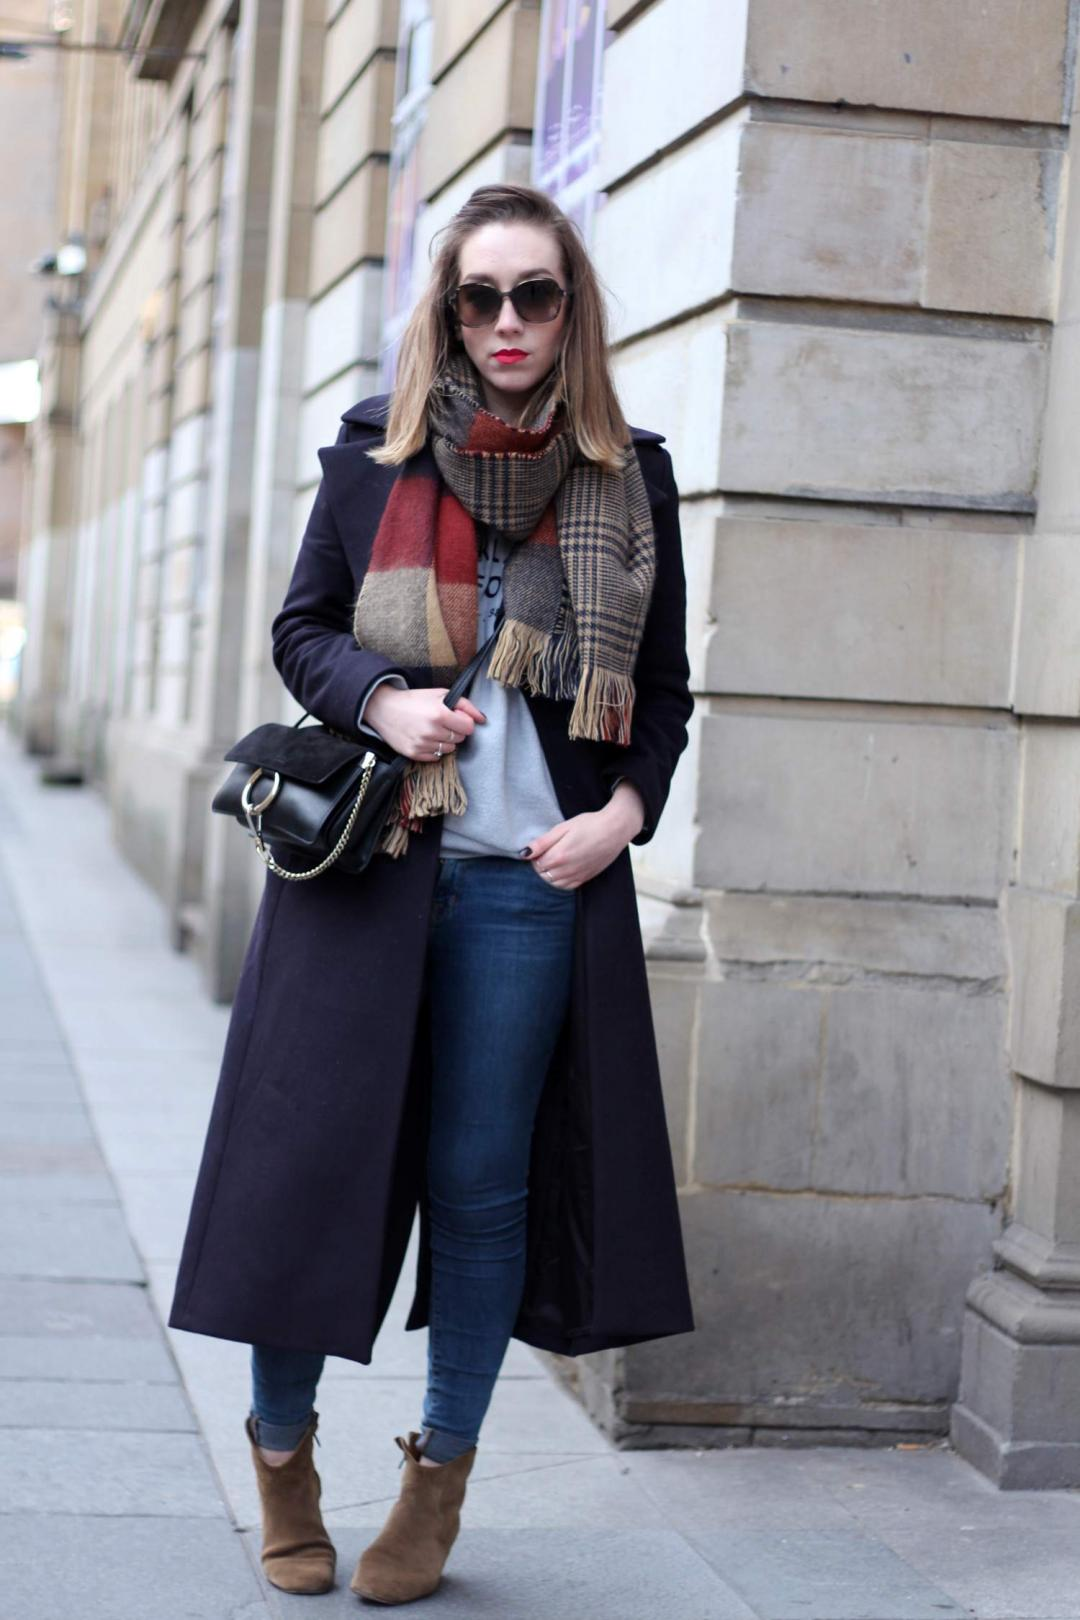 zara-jacket-checked-scarf-winter-outfit-j-brand-jeans-7